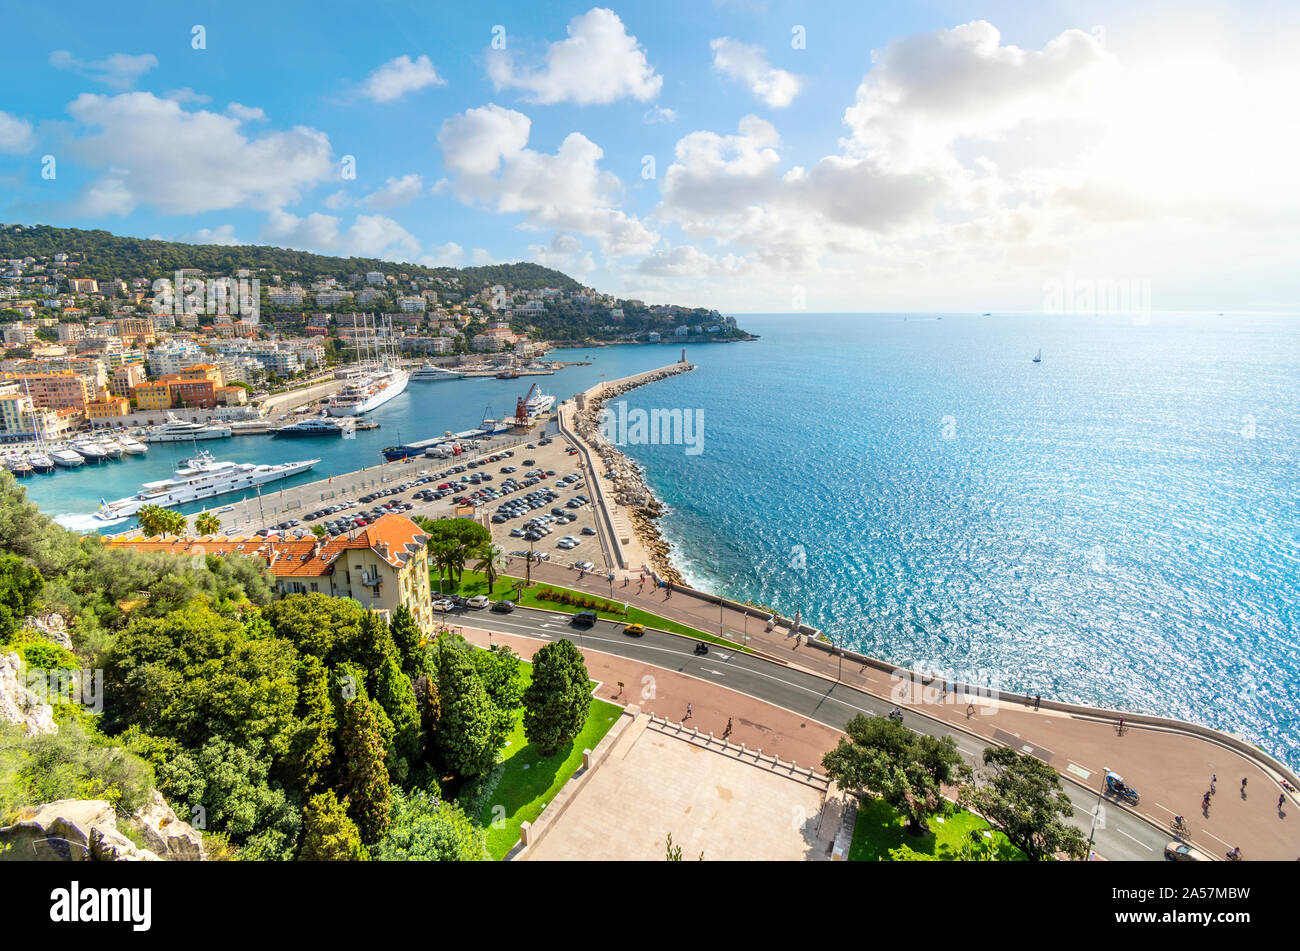 View from atop Castle Hill overlooking The Mediterranean Sea, promenade and the old harbor and port on the French Riviera, in Nice France. Stock Photo